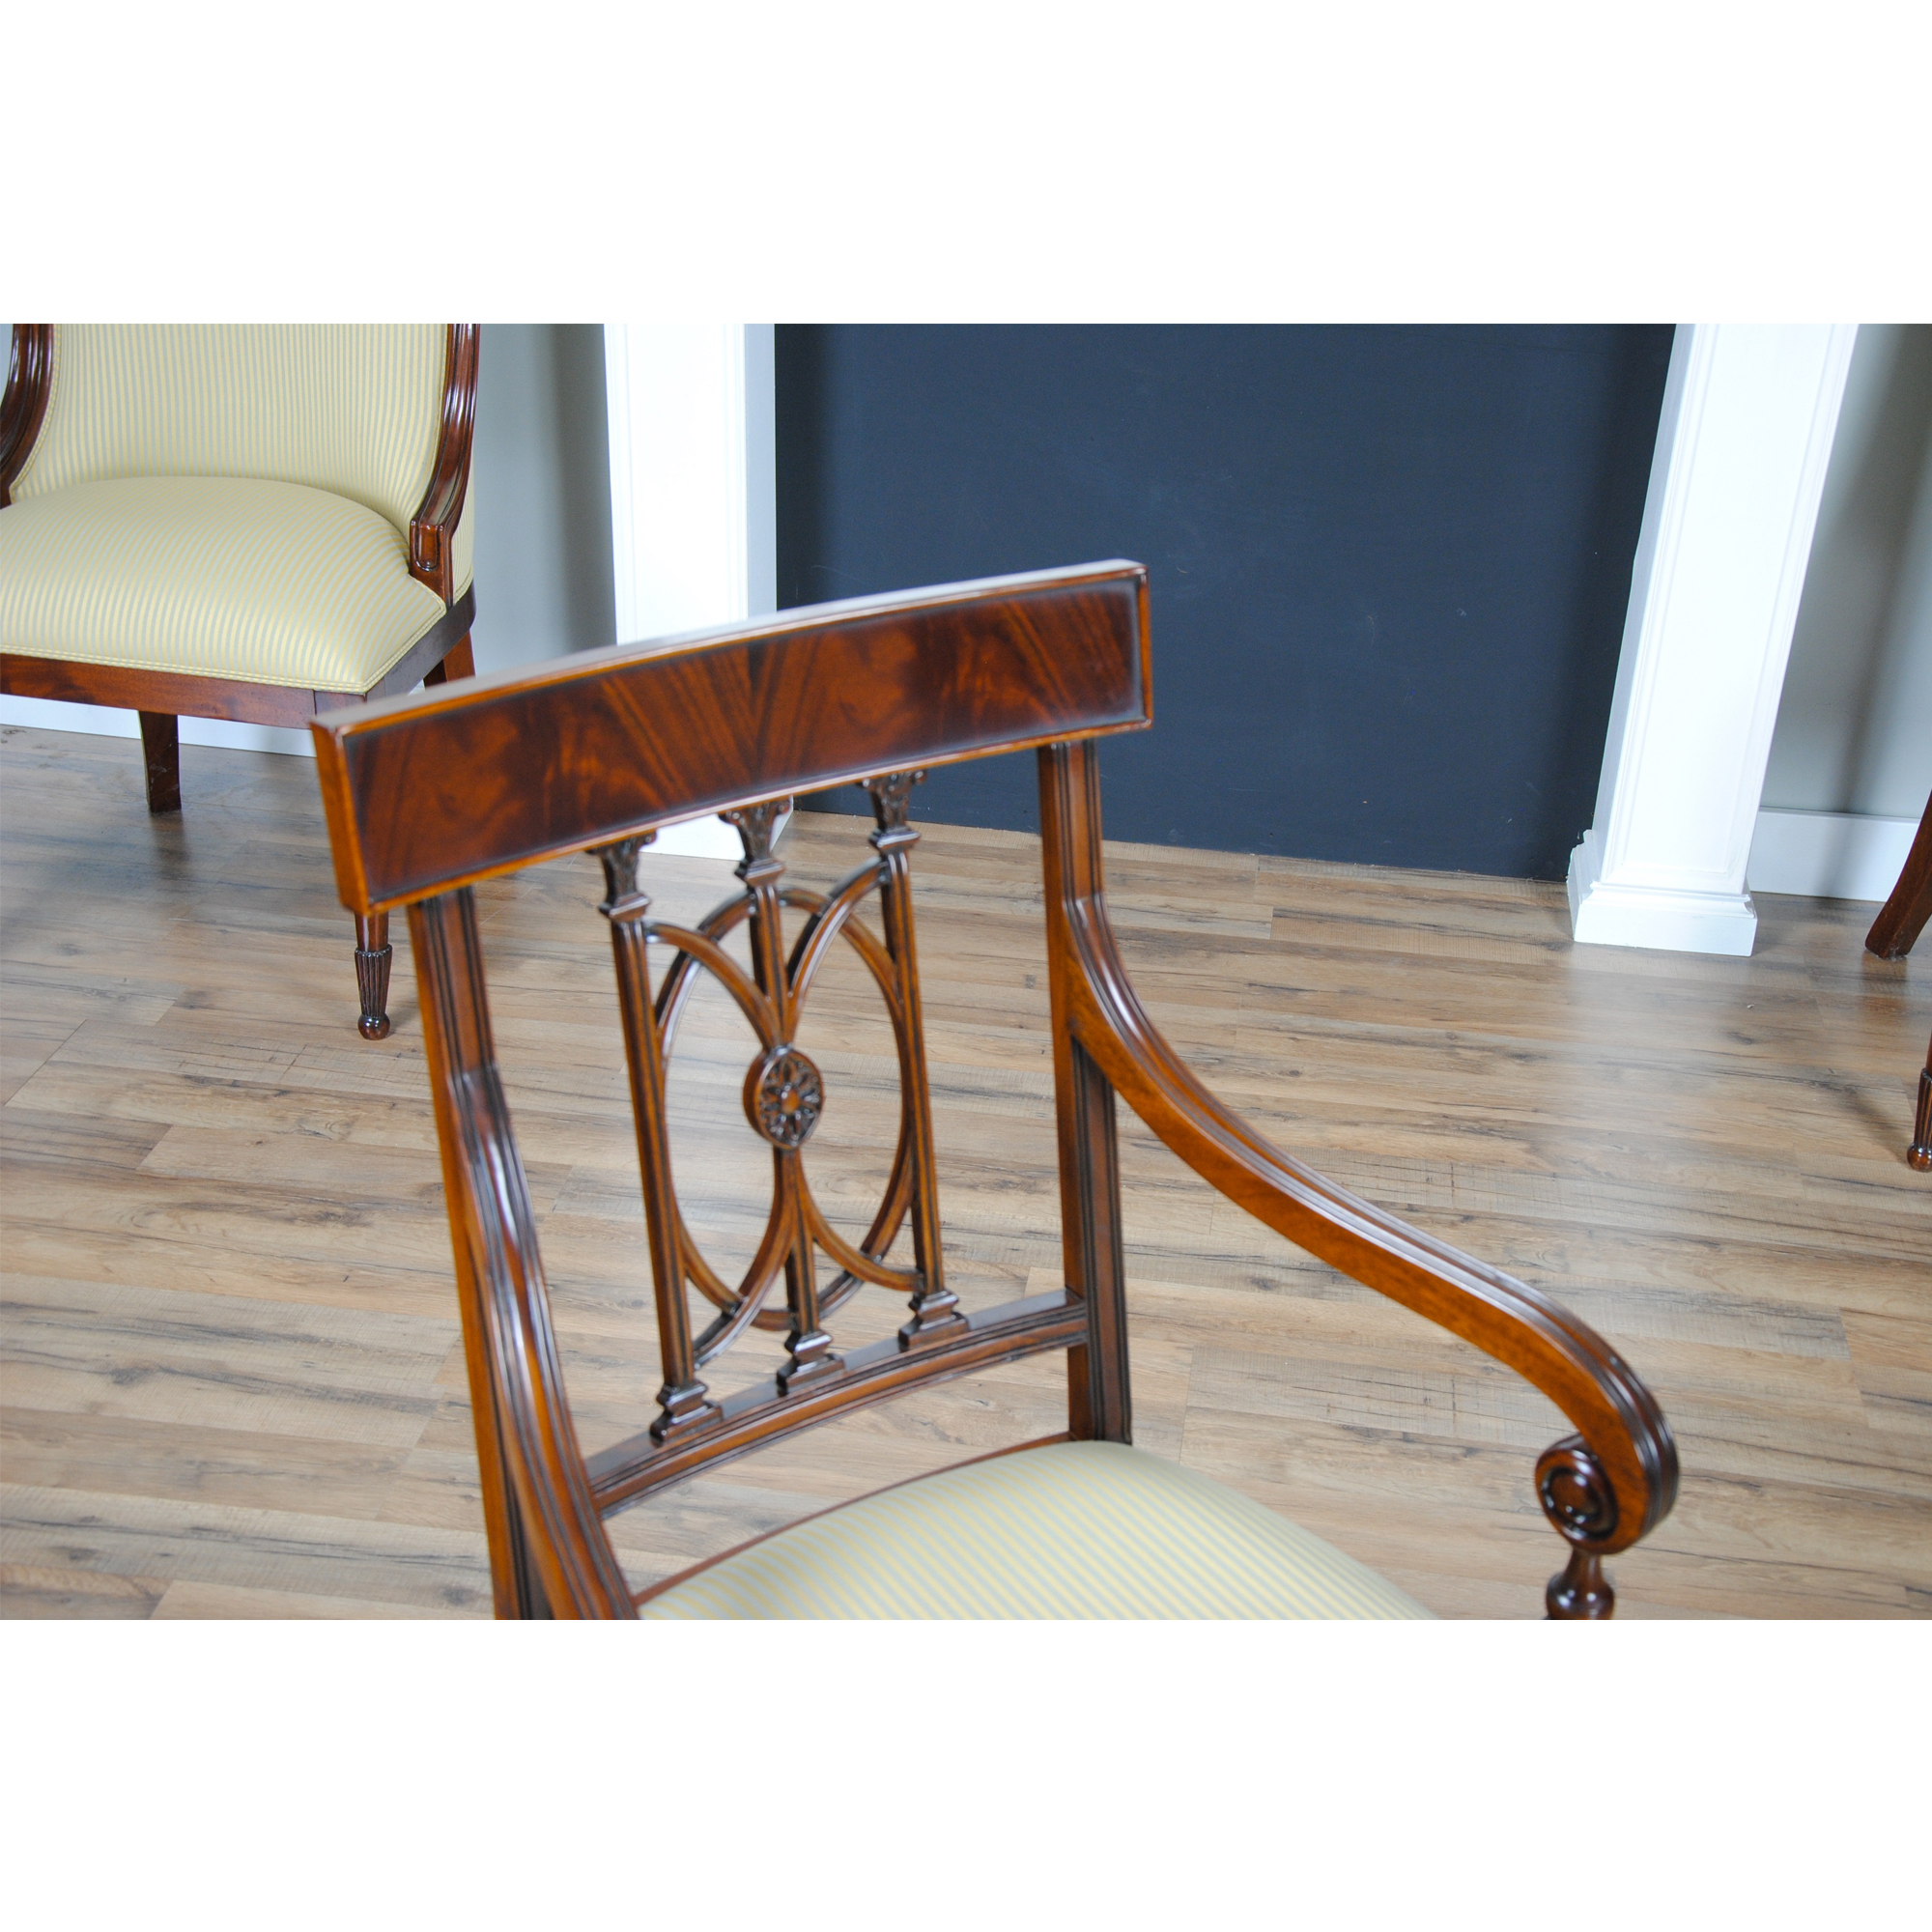 Mahogany hepplewhite arm chair niagara furniture free for Mahogany dining room furniture